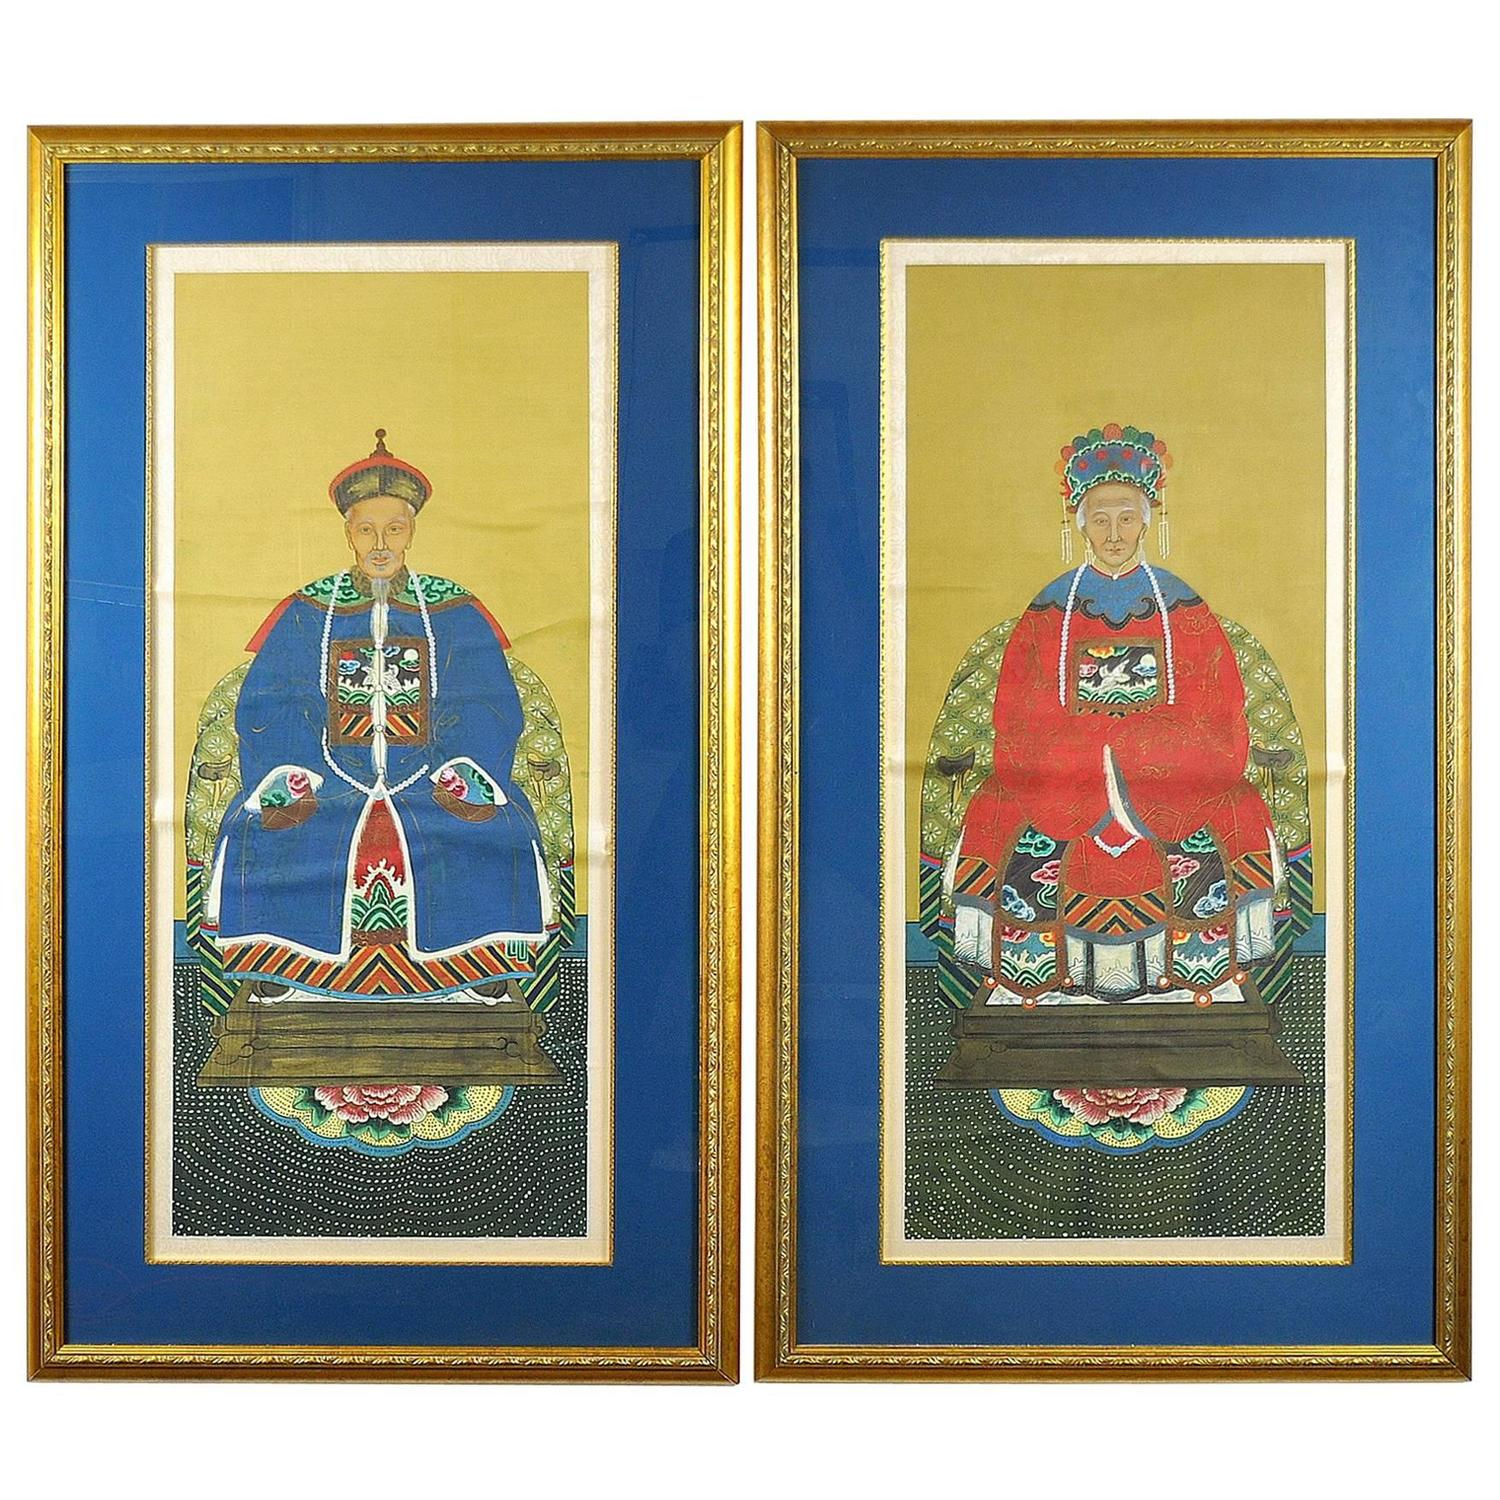 SELECT MODERN: Pair Of China Trade Ancestor Portraits